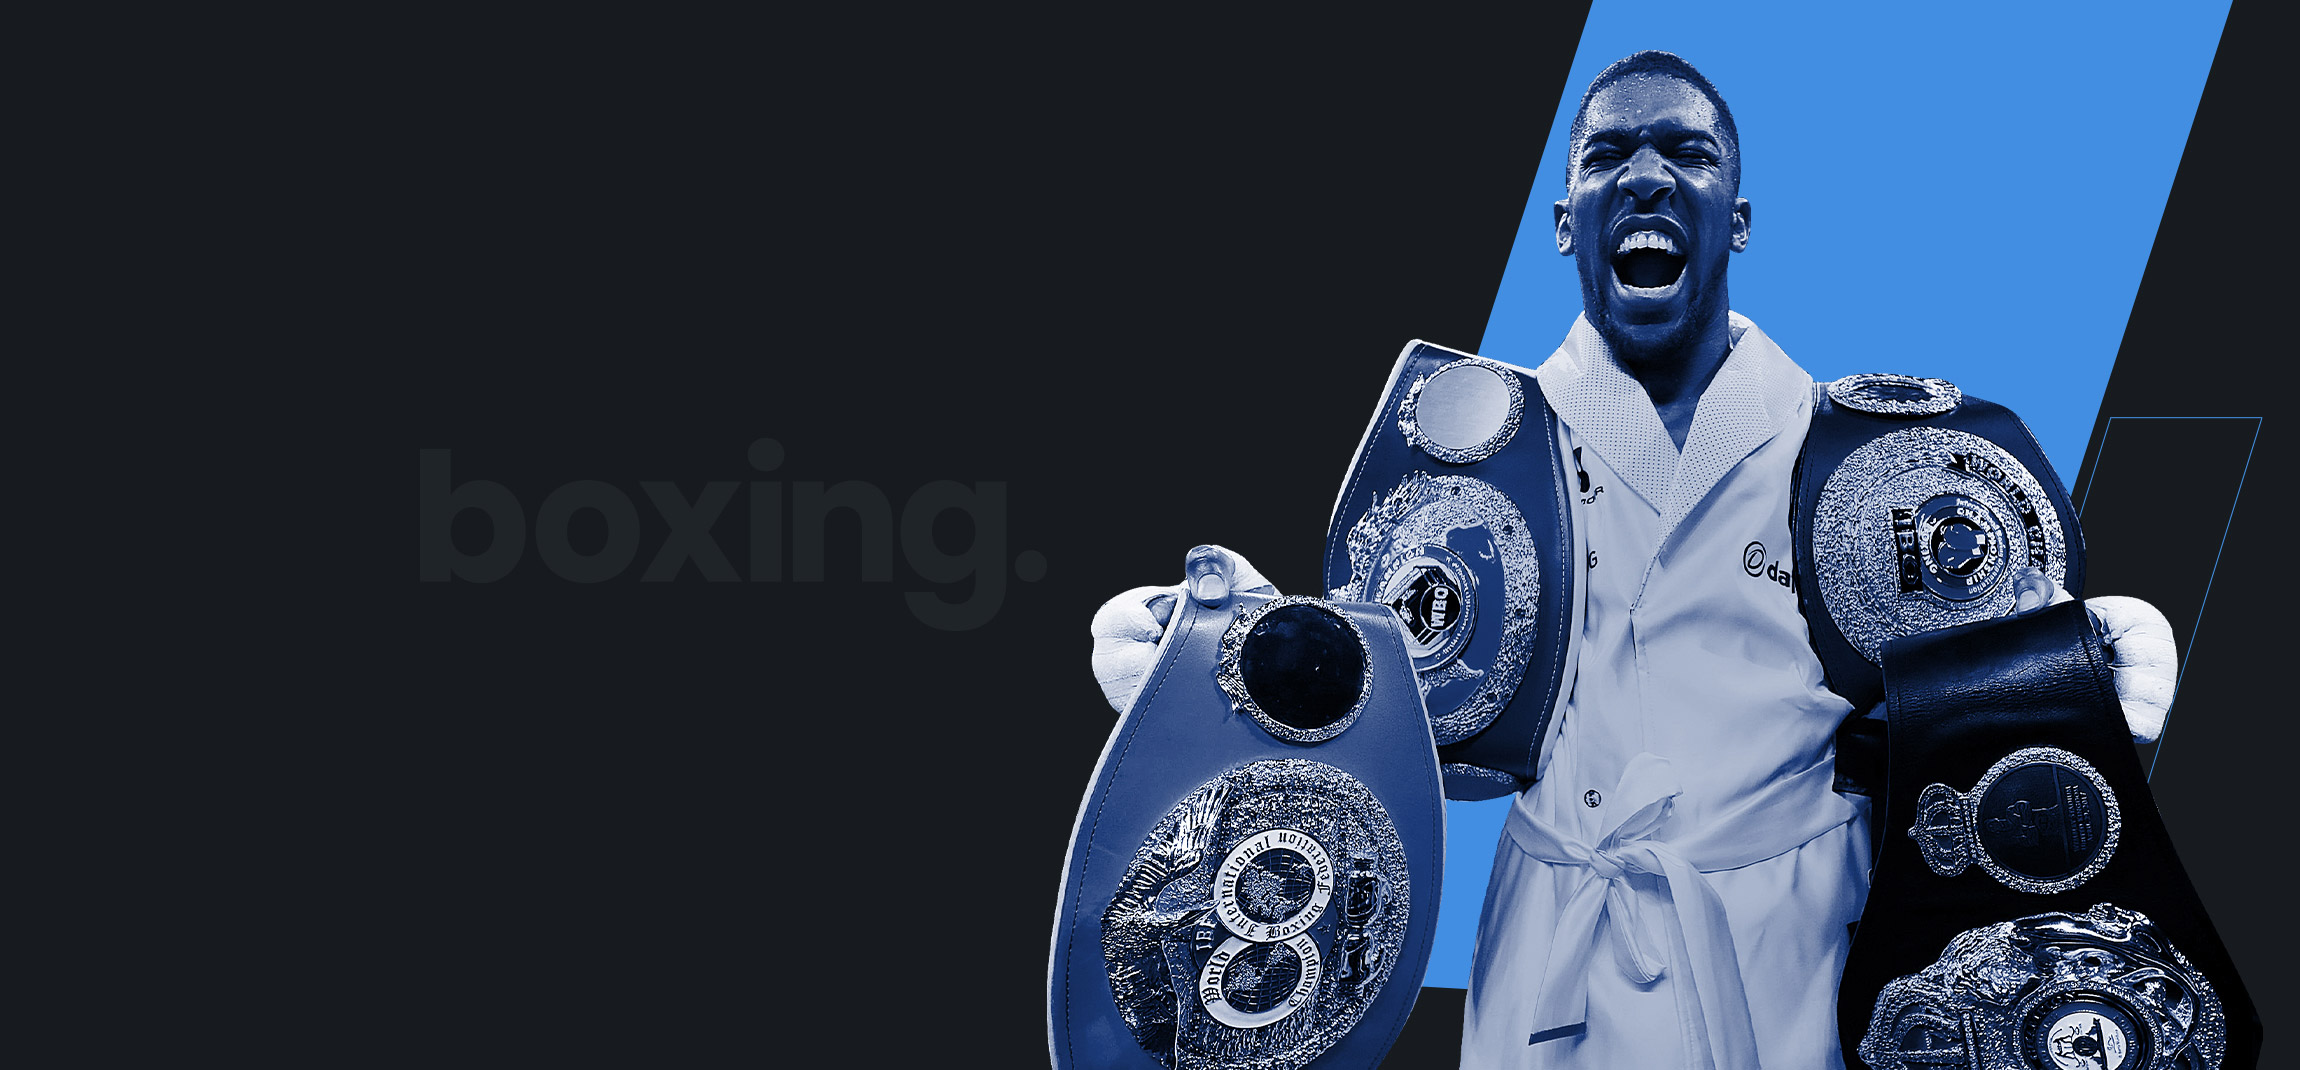 We are Matchroom Sport - We are Boxing